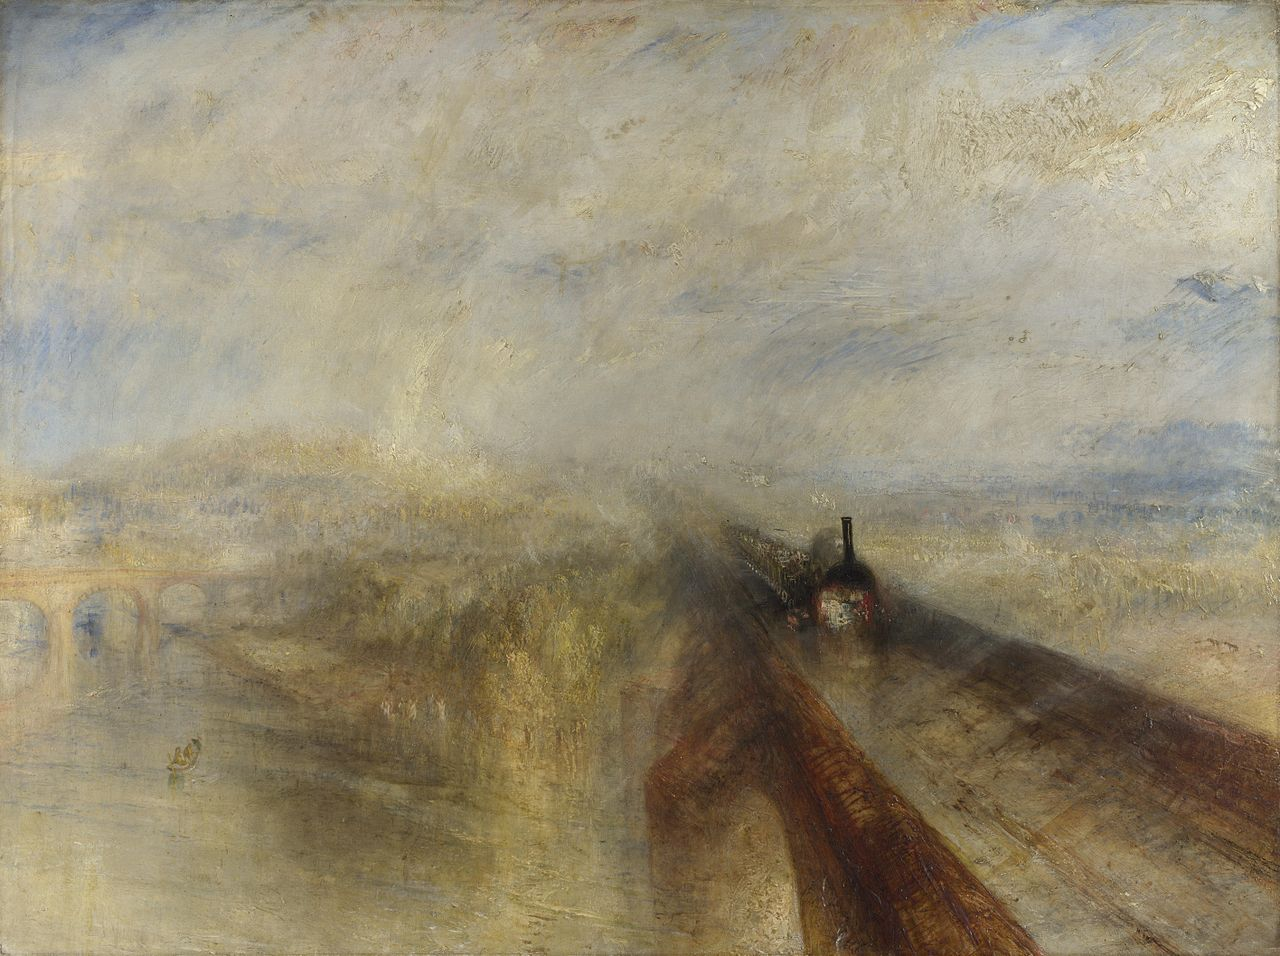 1280px-Turner_-_Rain,_Steam_and_Speed_-_National_Gallery_file